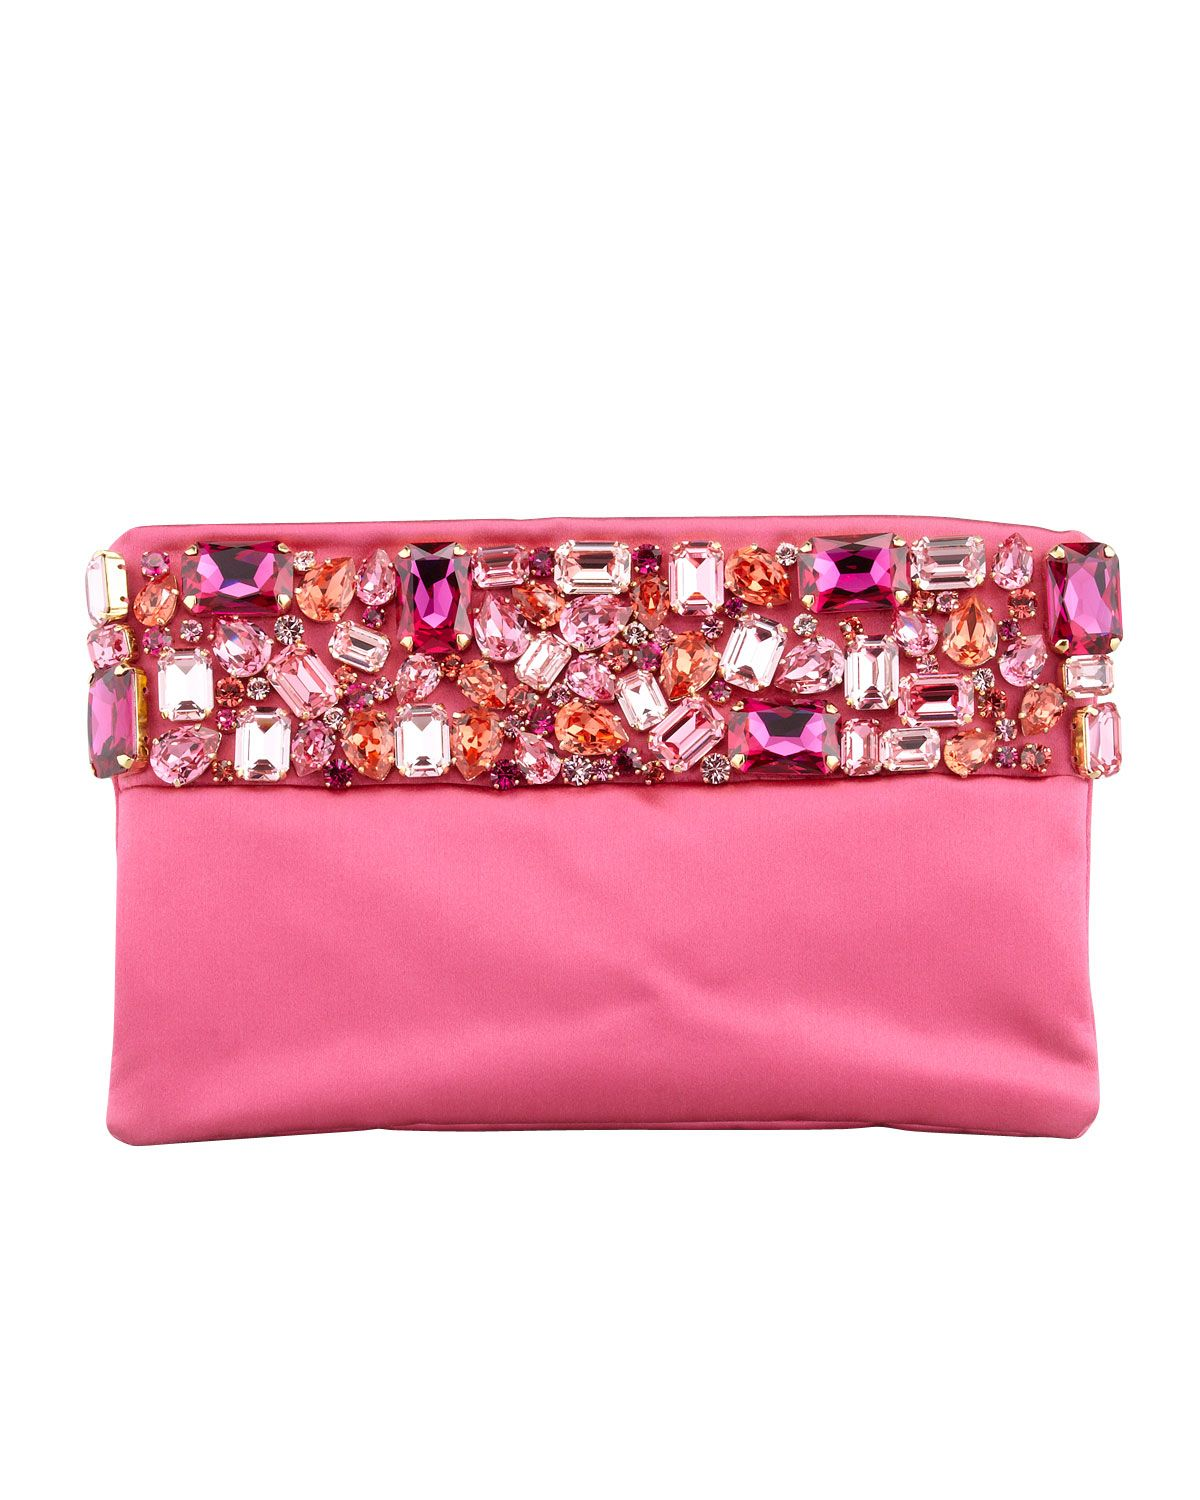 Prada Raso Jeweled Pochette Bag